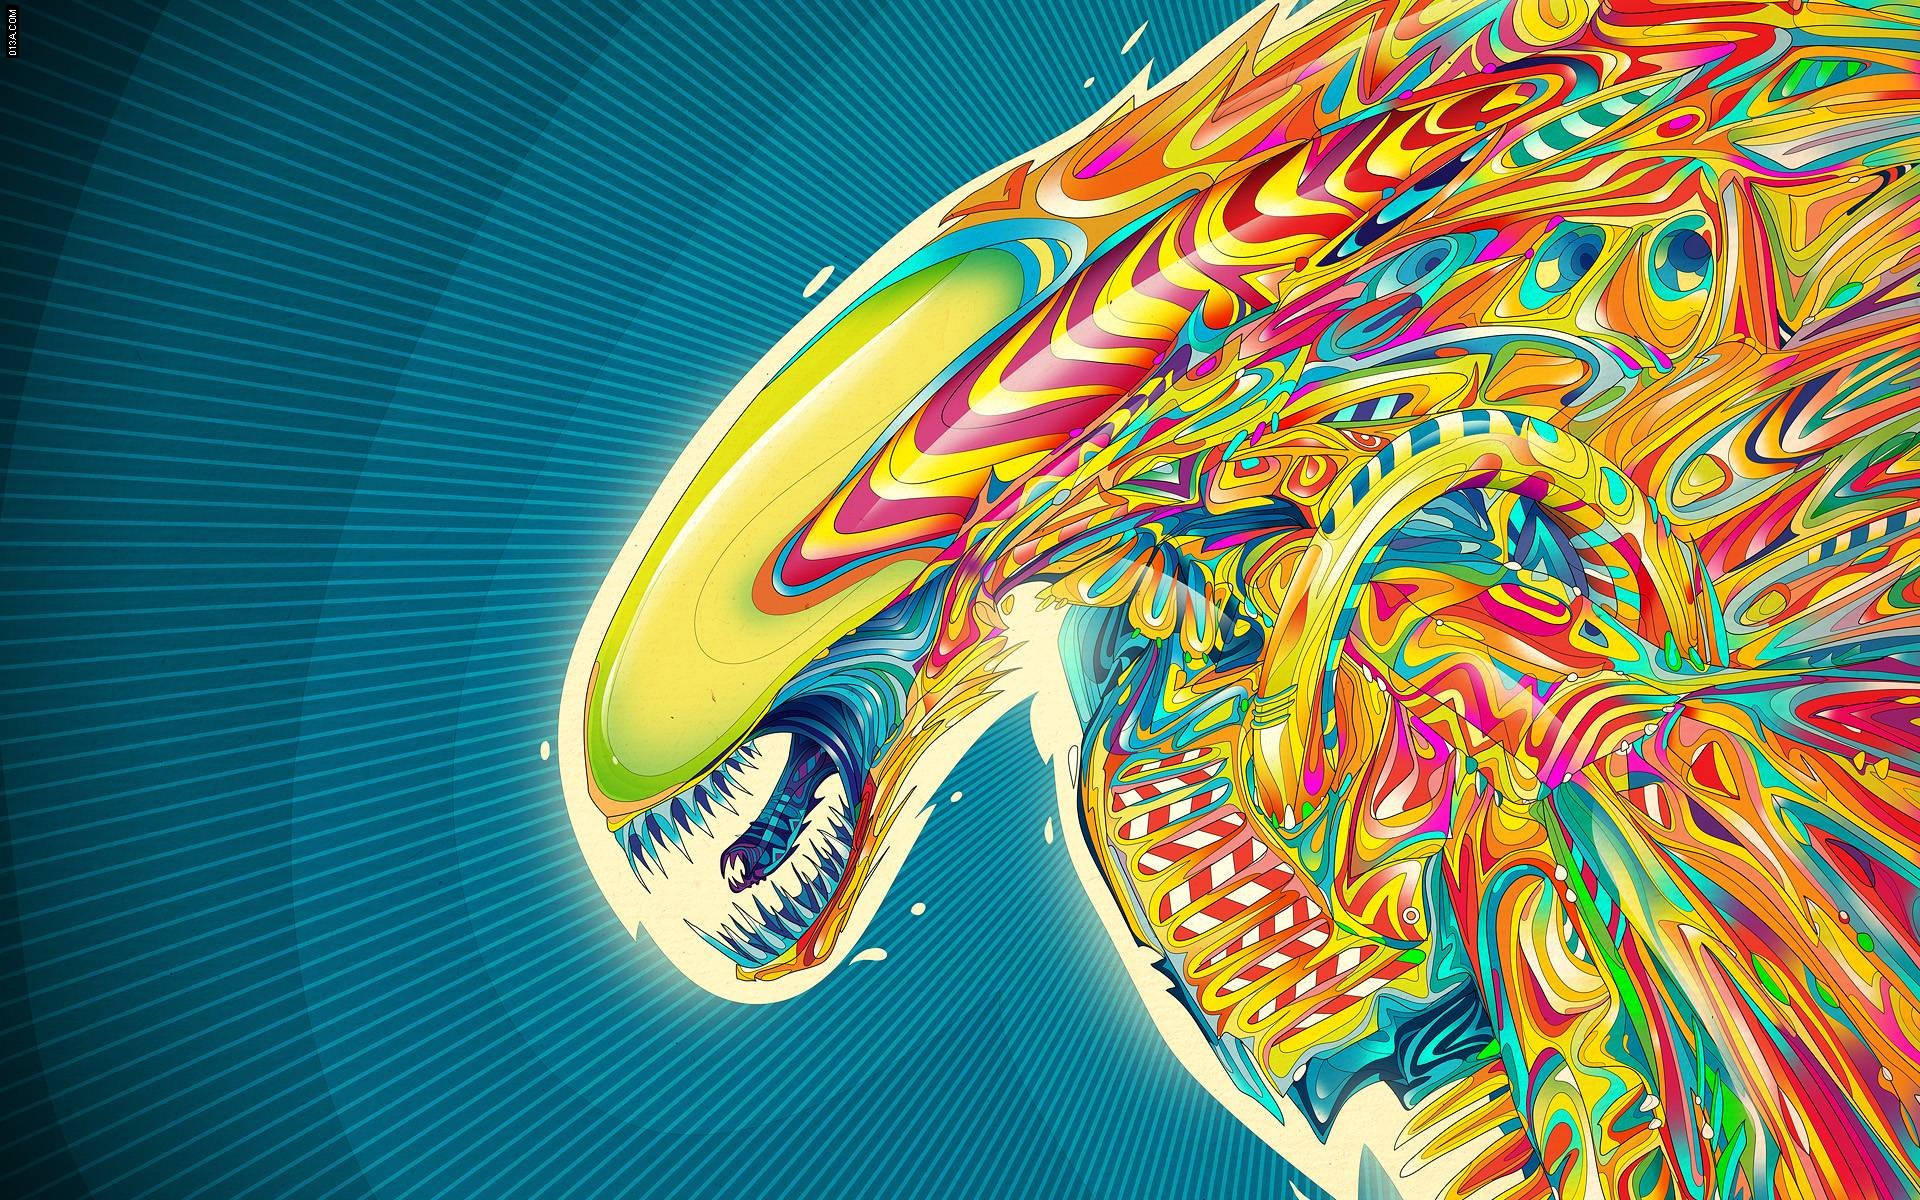 100 Psychedelic Wallpapers Hd Trippy Backgrounds 2016: Trippy Wallpaper HD ·①